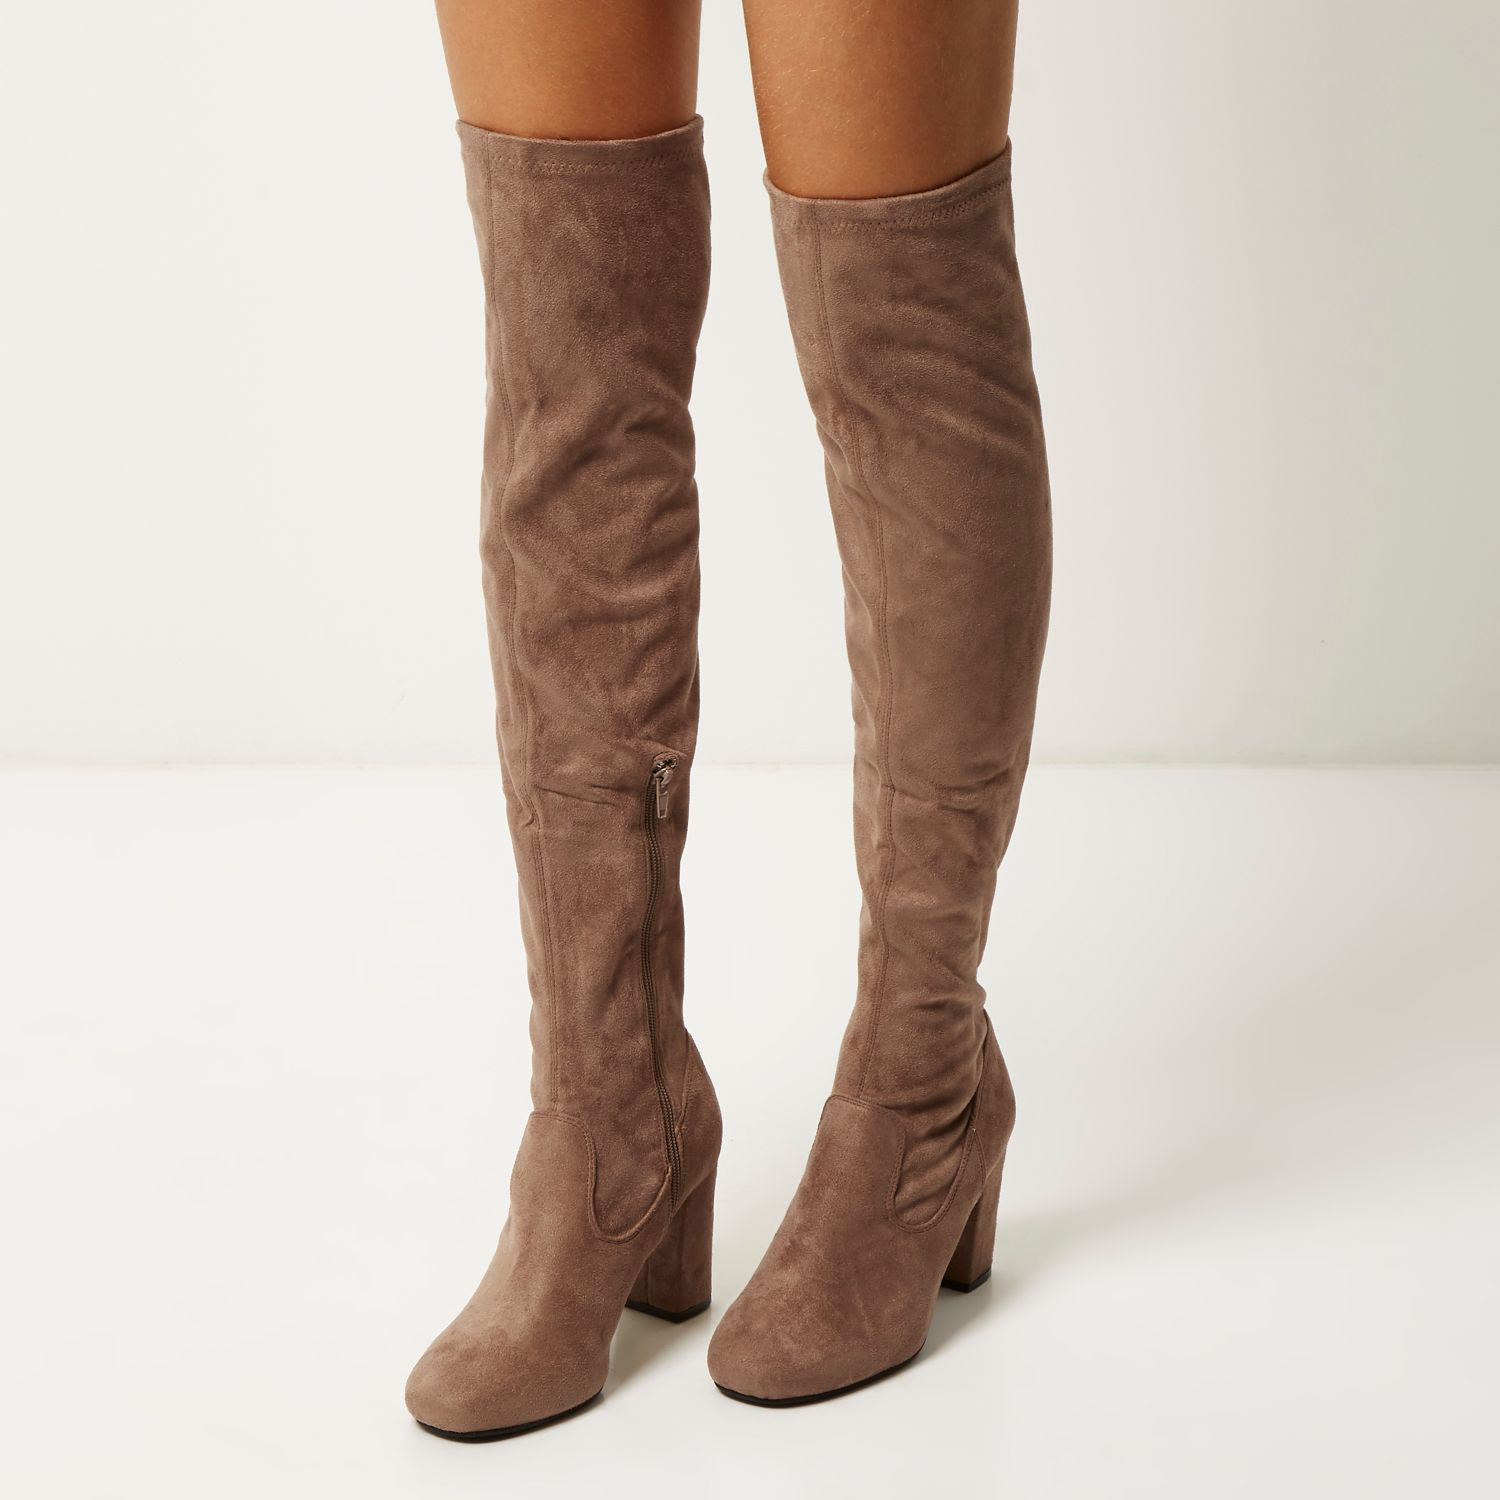 Tan Over The Knee Boots eFB2nF0M